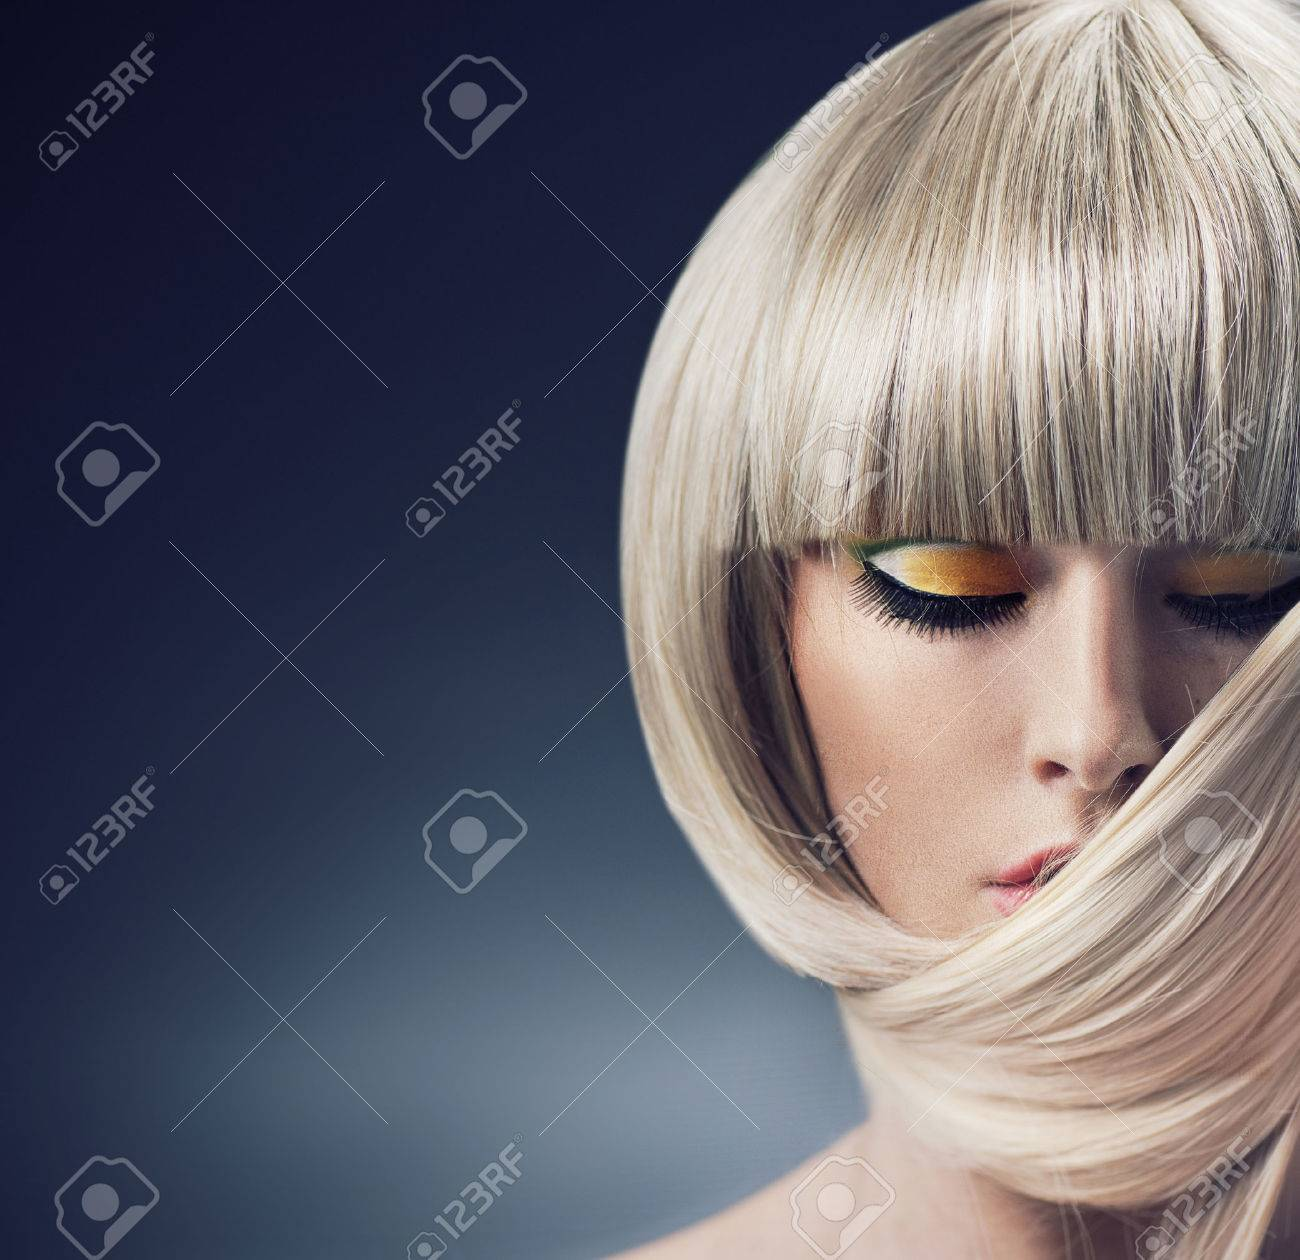 Portrait of a blond woman with trendy coiffure Archivio Fotografico - 50899856